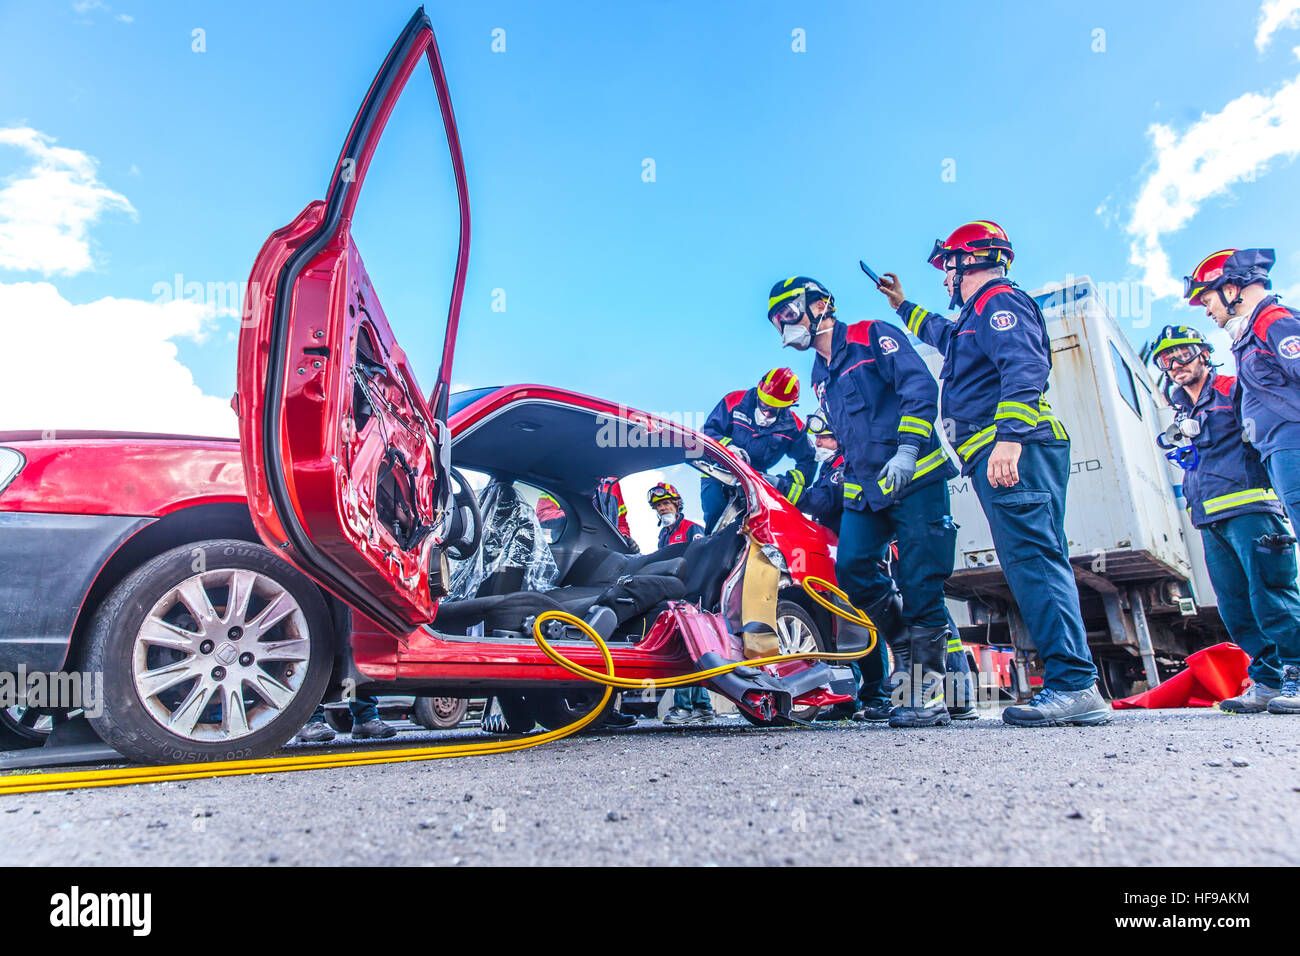 firemen during a car accident simulation Stock Photo: 129898376 - Alamy